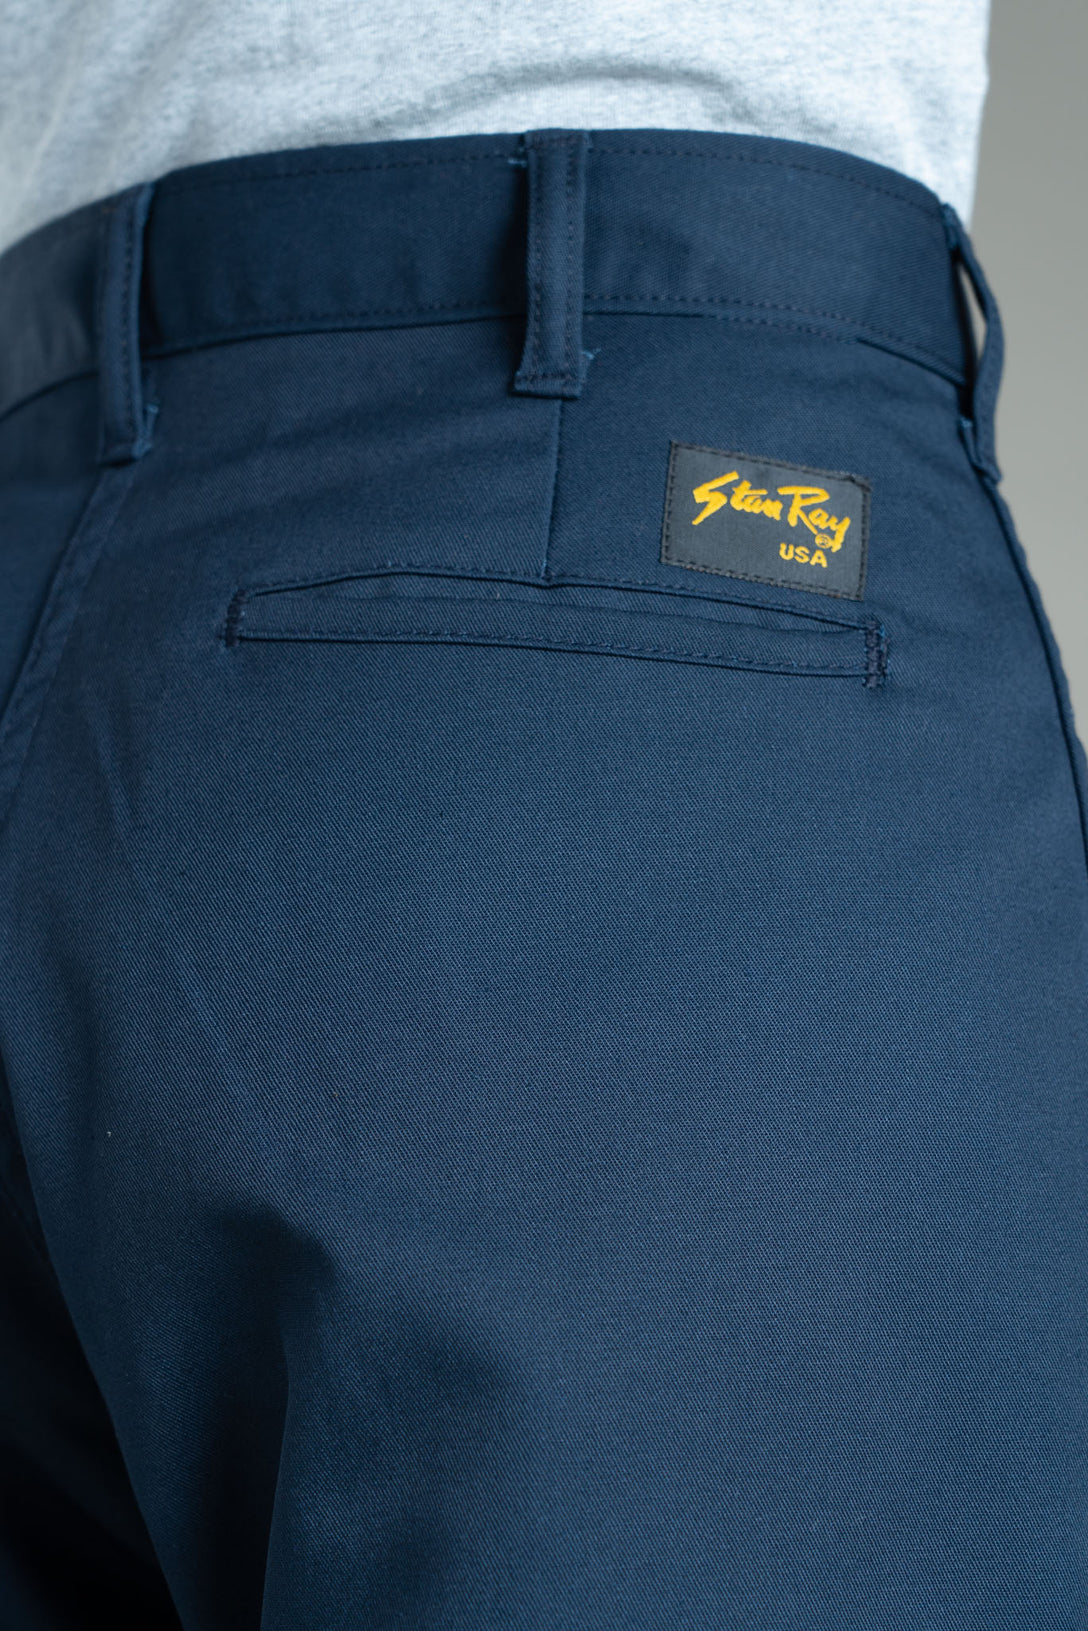 Easy Chino (Navy Twill) - Stan Ray